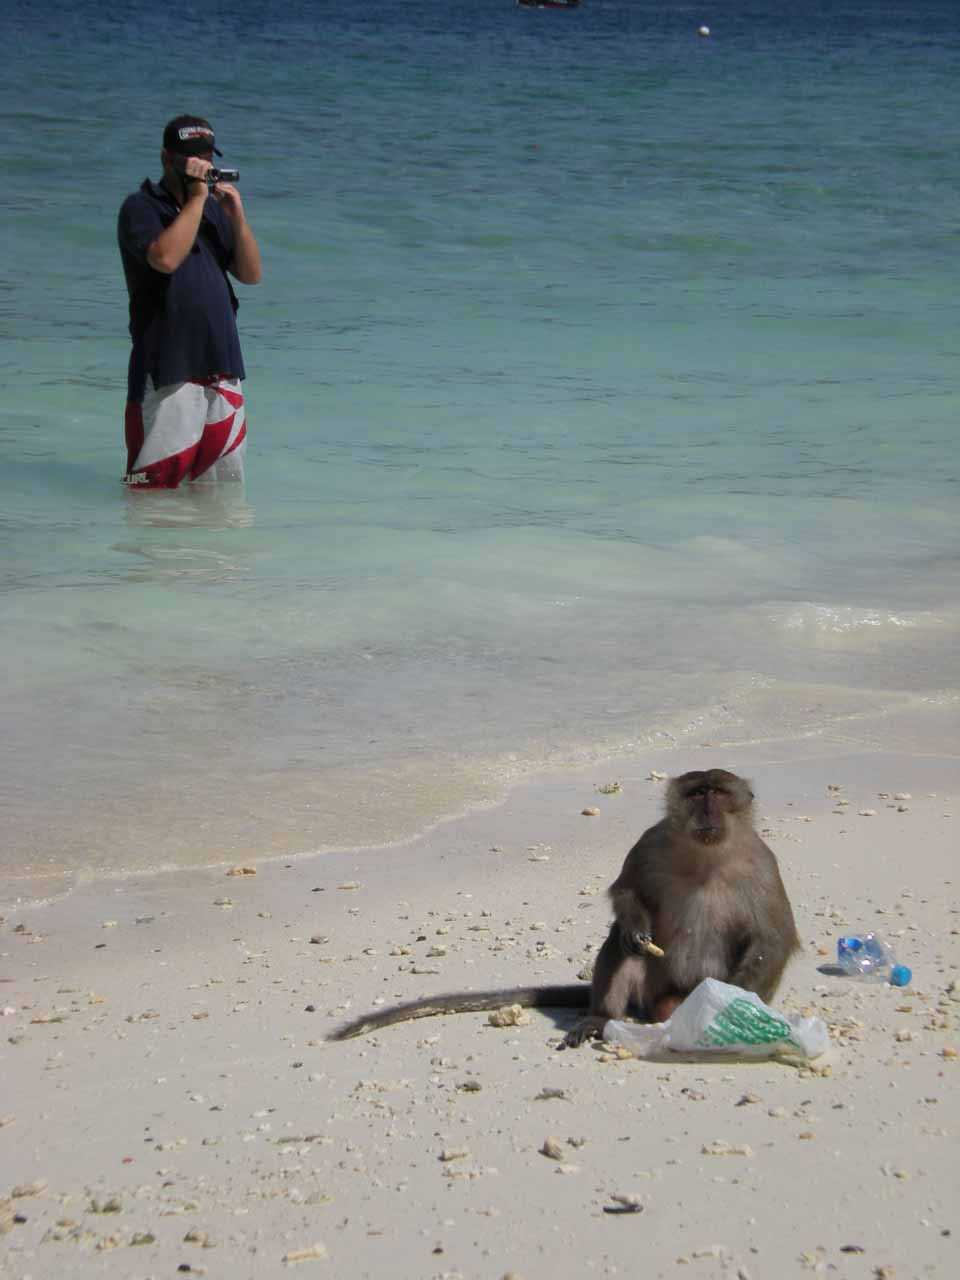 A tourist watches a monkey feeding itself from a banana handout